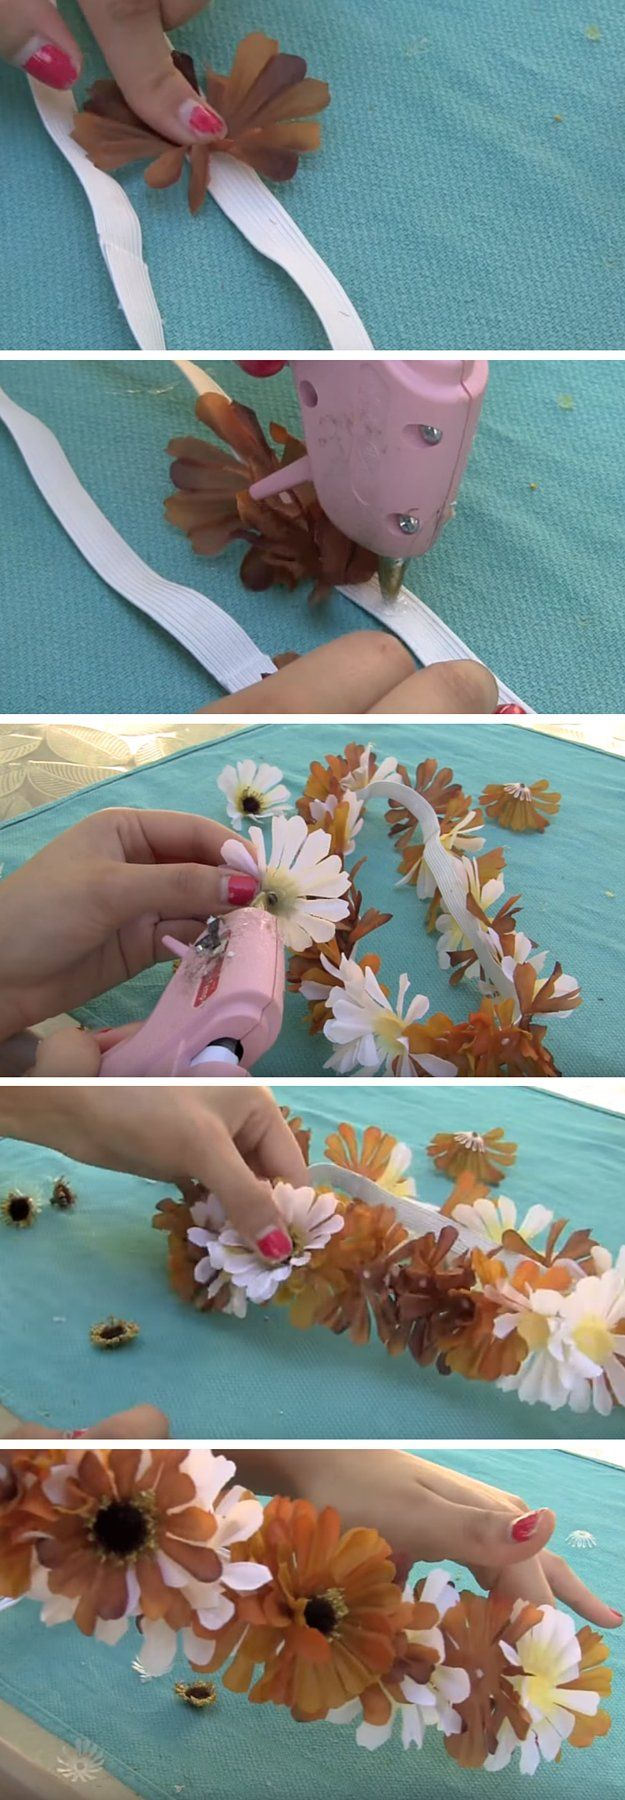 How to Make a DIY Flower Headband | Fabulous Flower Crown Great For Weddings, Parties And More! by DIY Ready at http://diyready.com/how-to-make-a-diy-flower-headband/